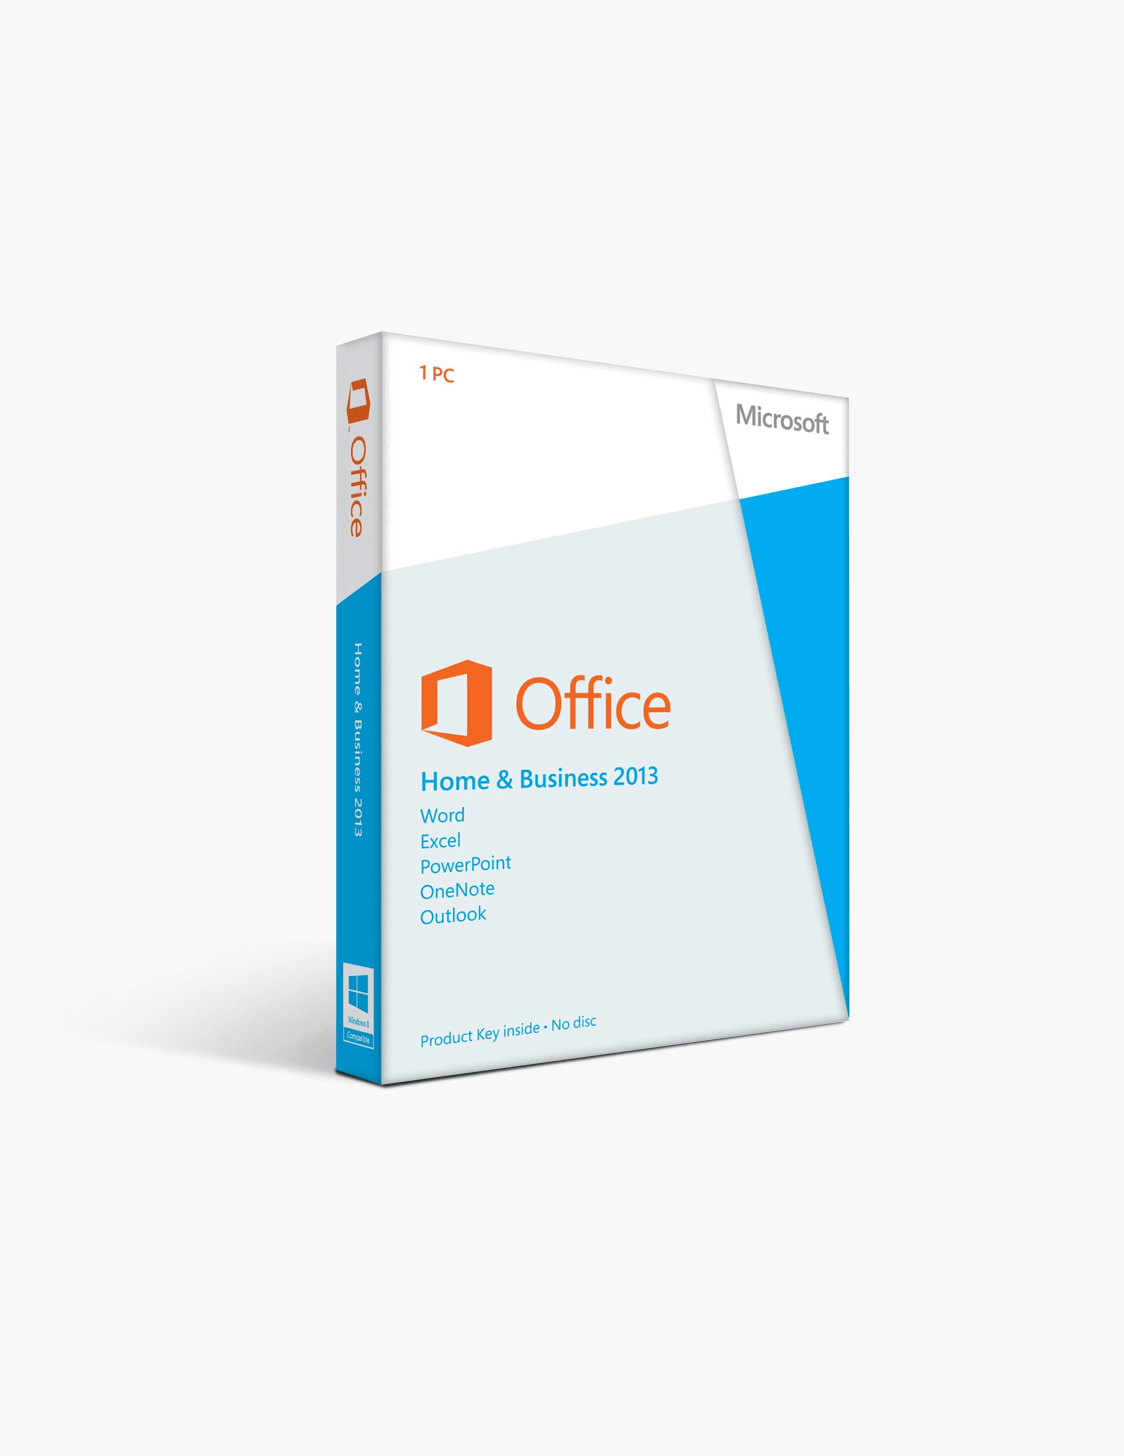 Microsoft Office 2013 Home and Business Pc License